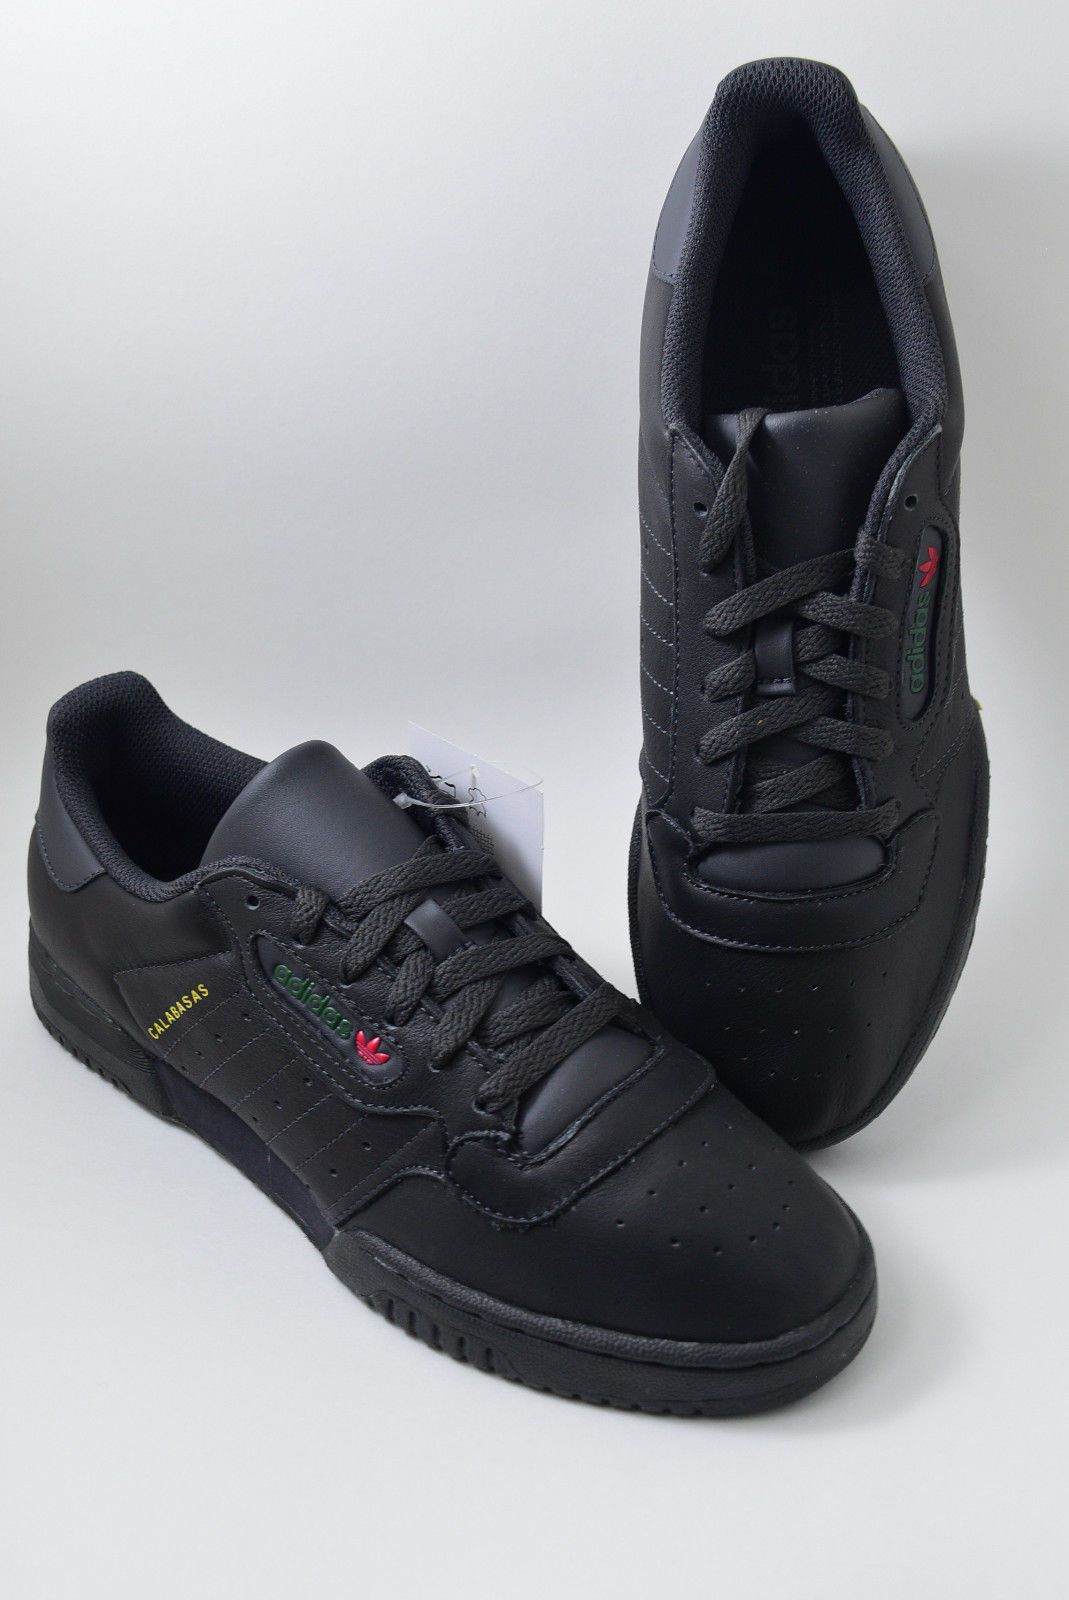 27ac9fb0836 Adidas Yeezy Powerphase Calabasas Core Black 7